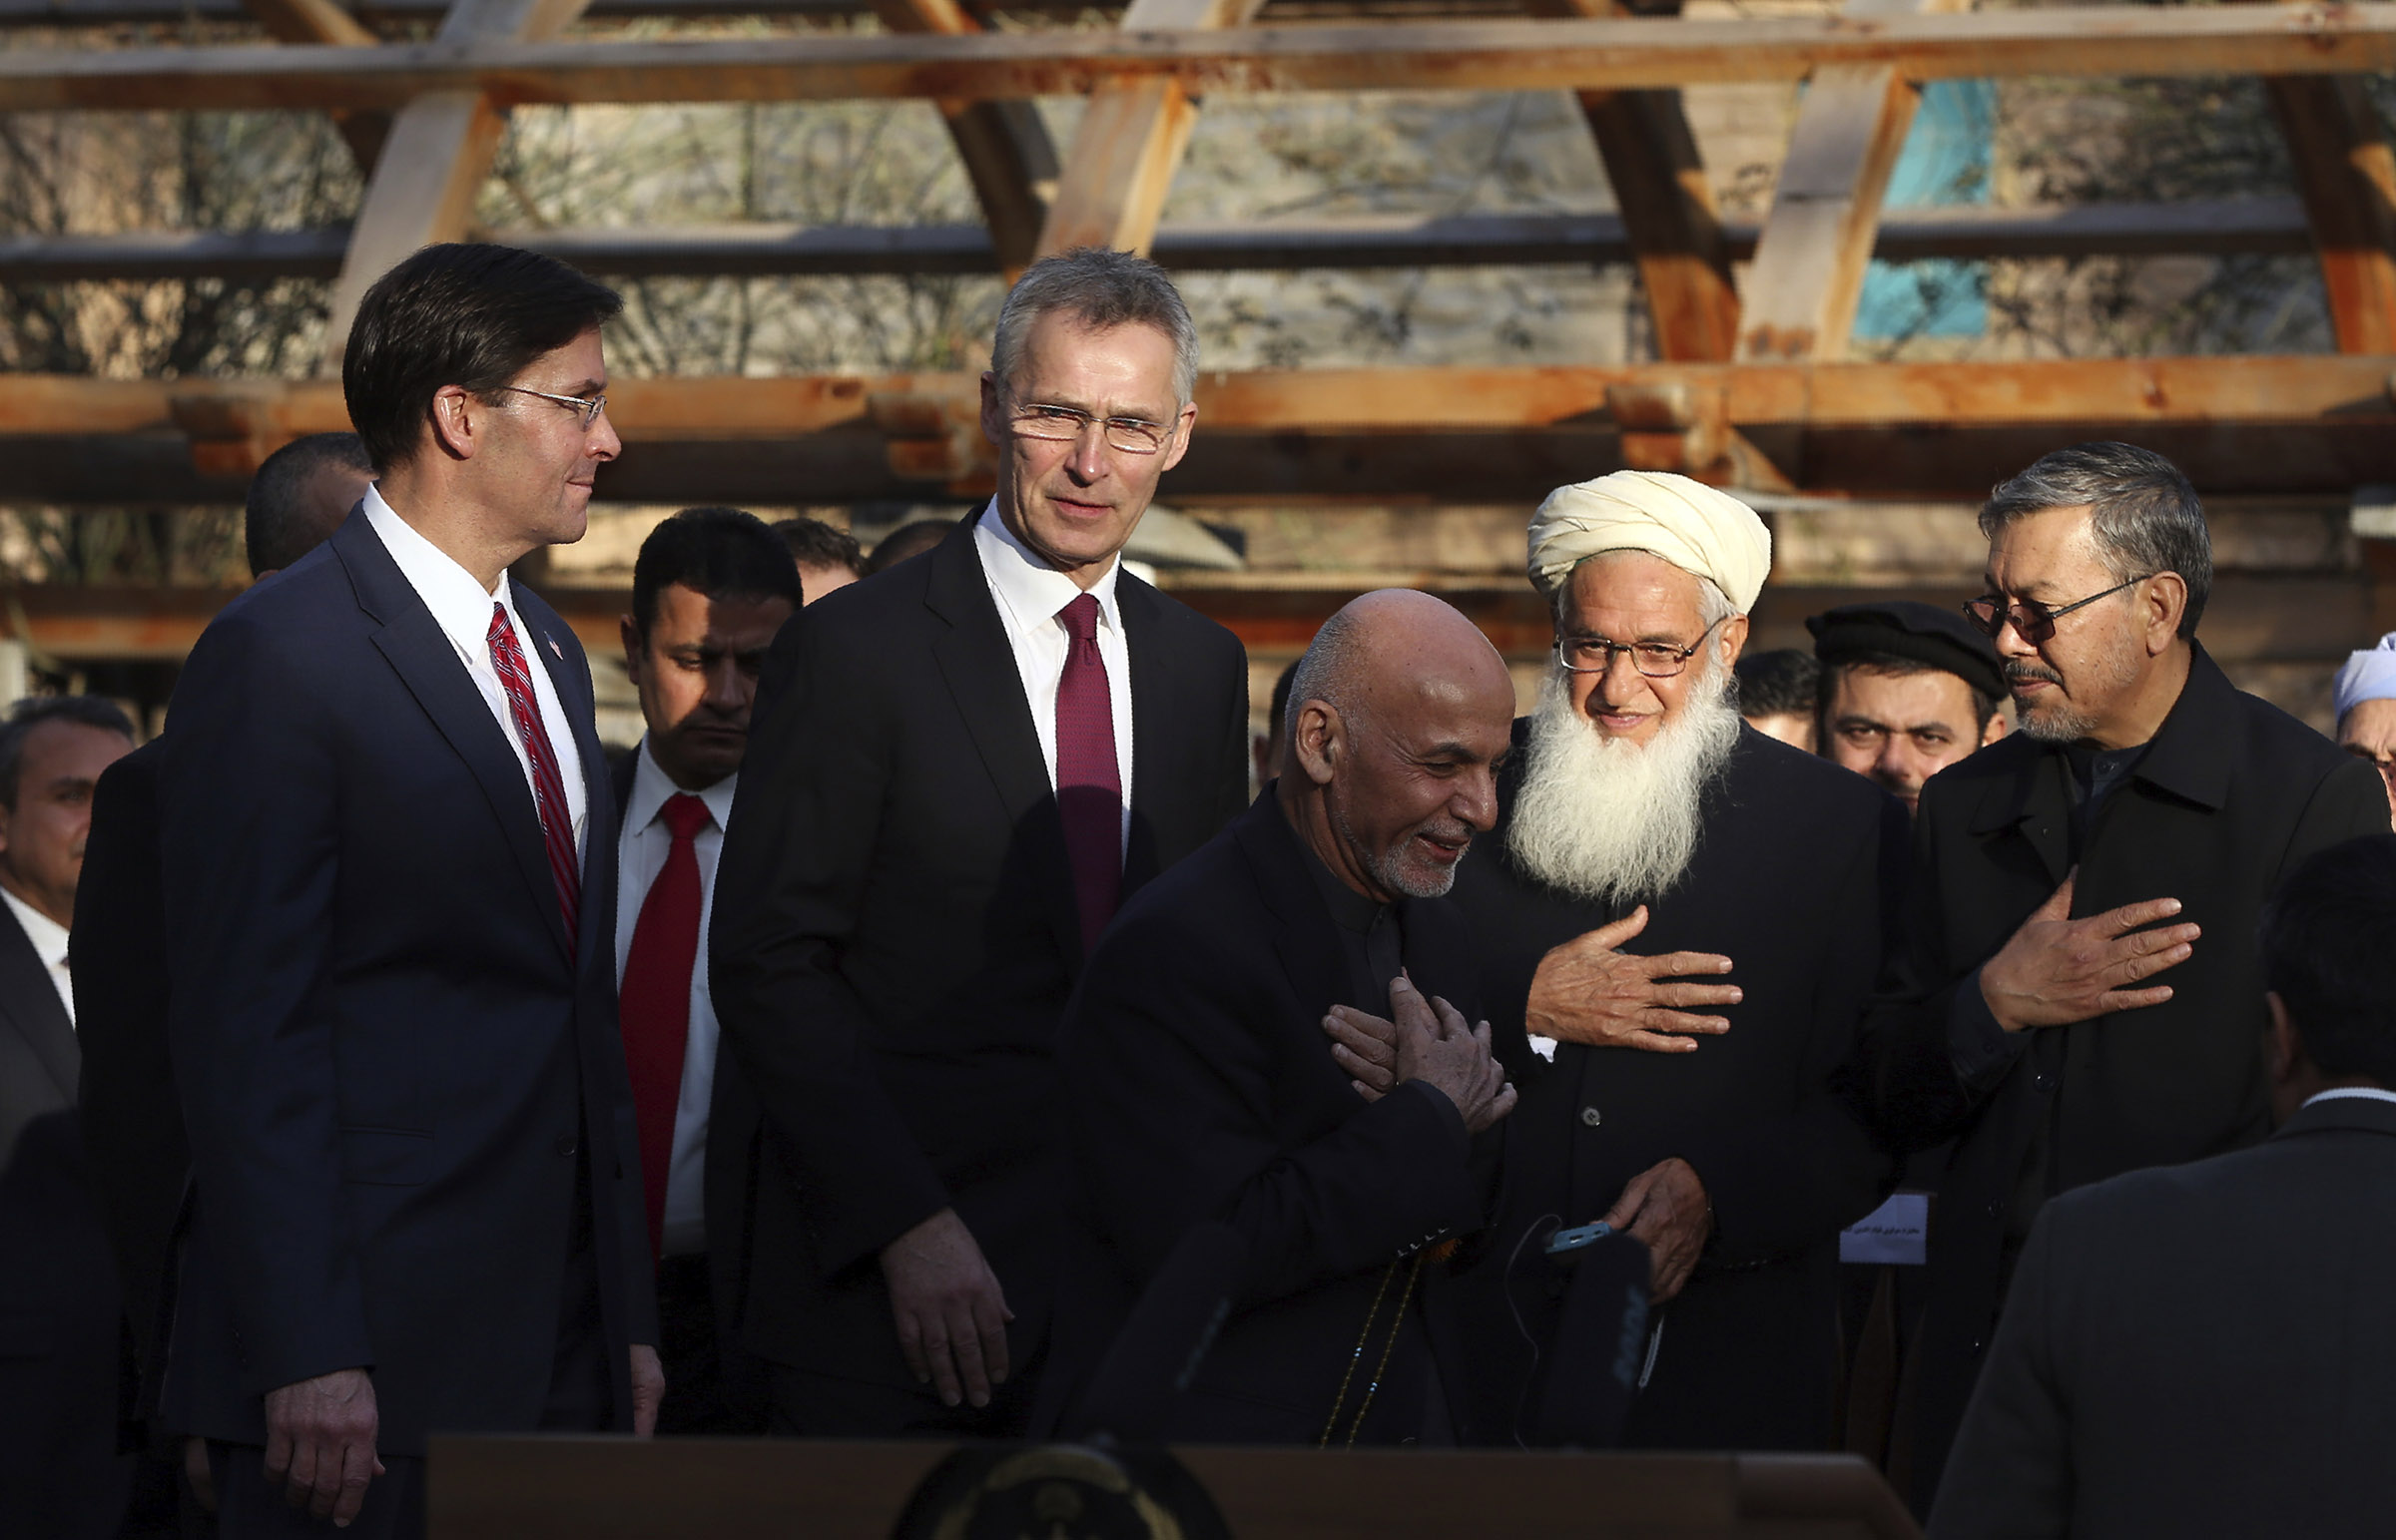 Afghan President Ashraf Ghani, center, arrives with NATO Secretary General Jens Stoltenberg, and U.S. Secretary of Defense Mark Esper for a joint news conference at the presidential palace in Kabul, Afghanistan on Feb. 29, 2020.